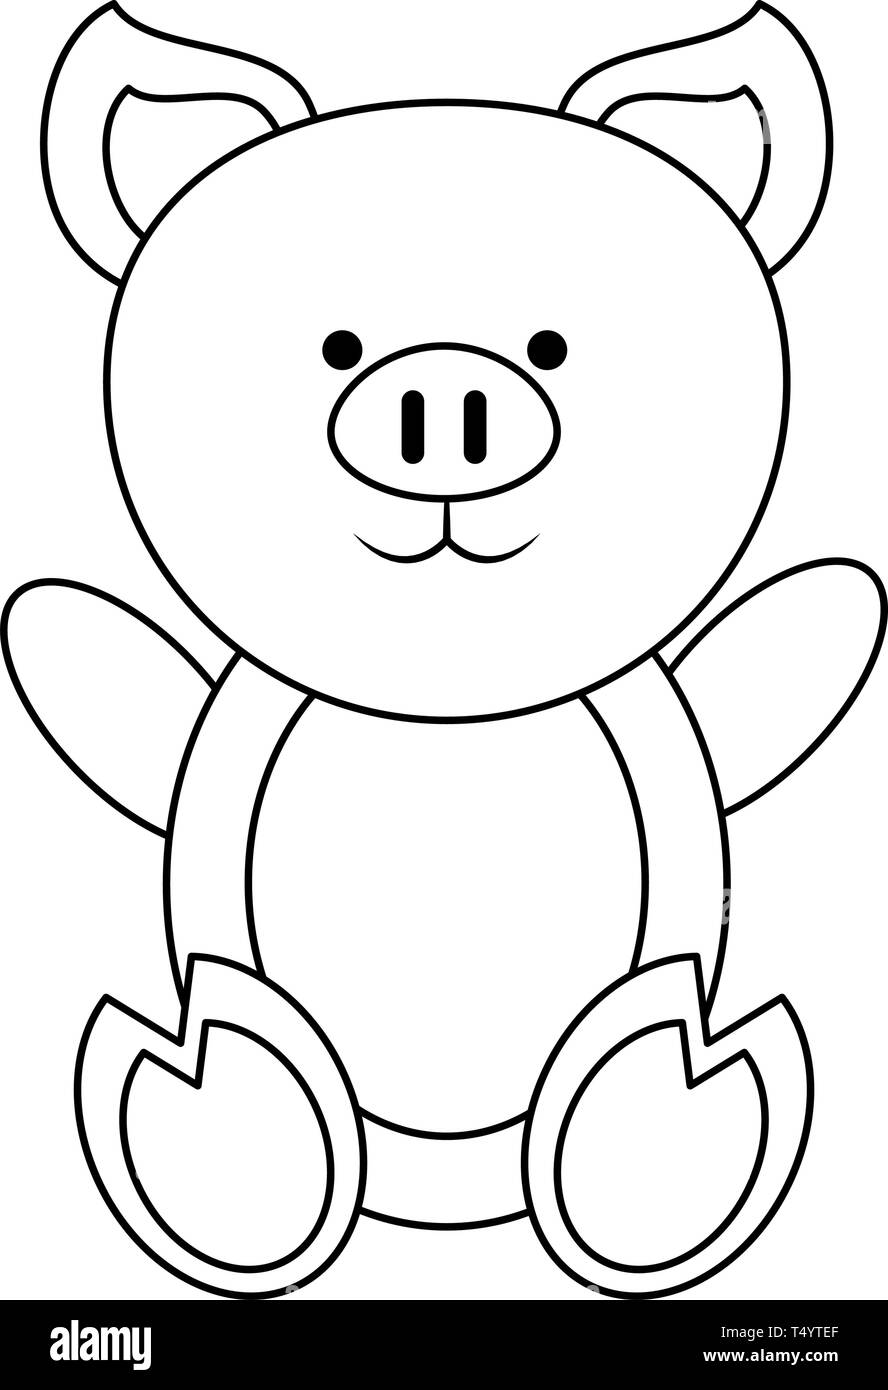 Pig Cute Animal In Black And White Stock Vector Image Art Alamy